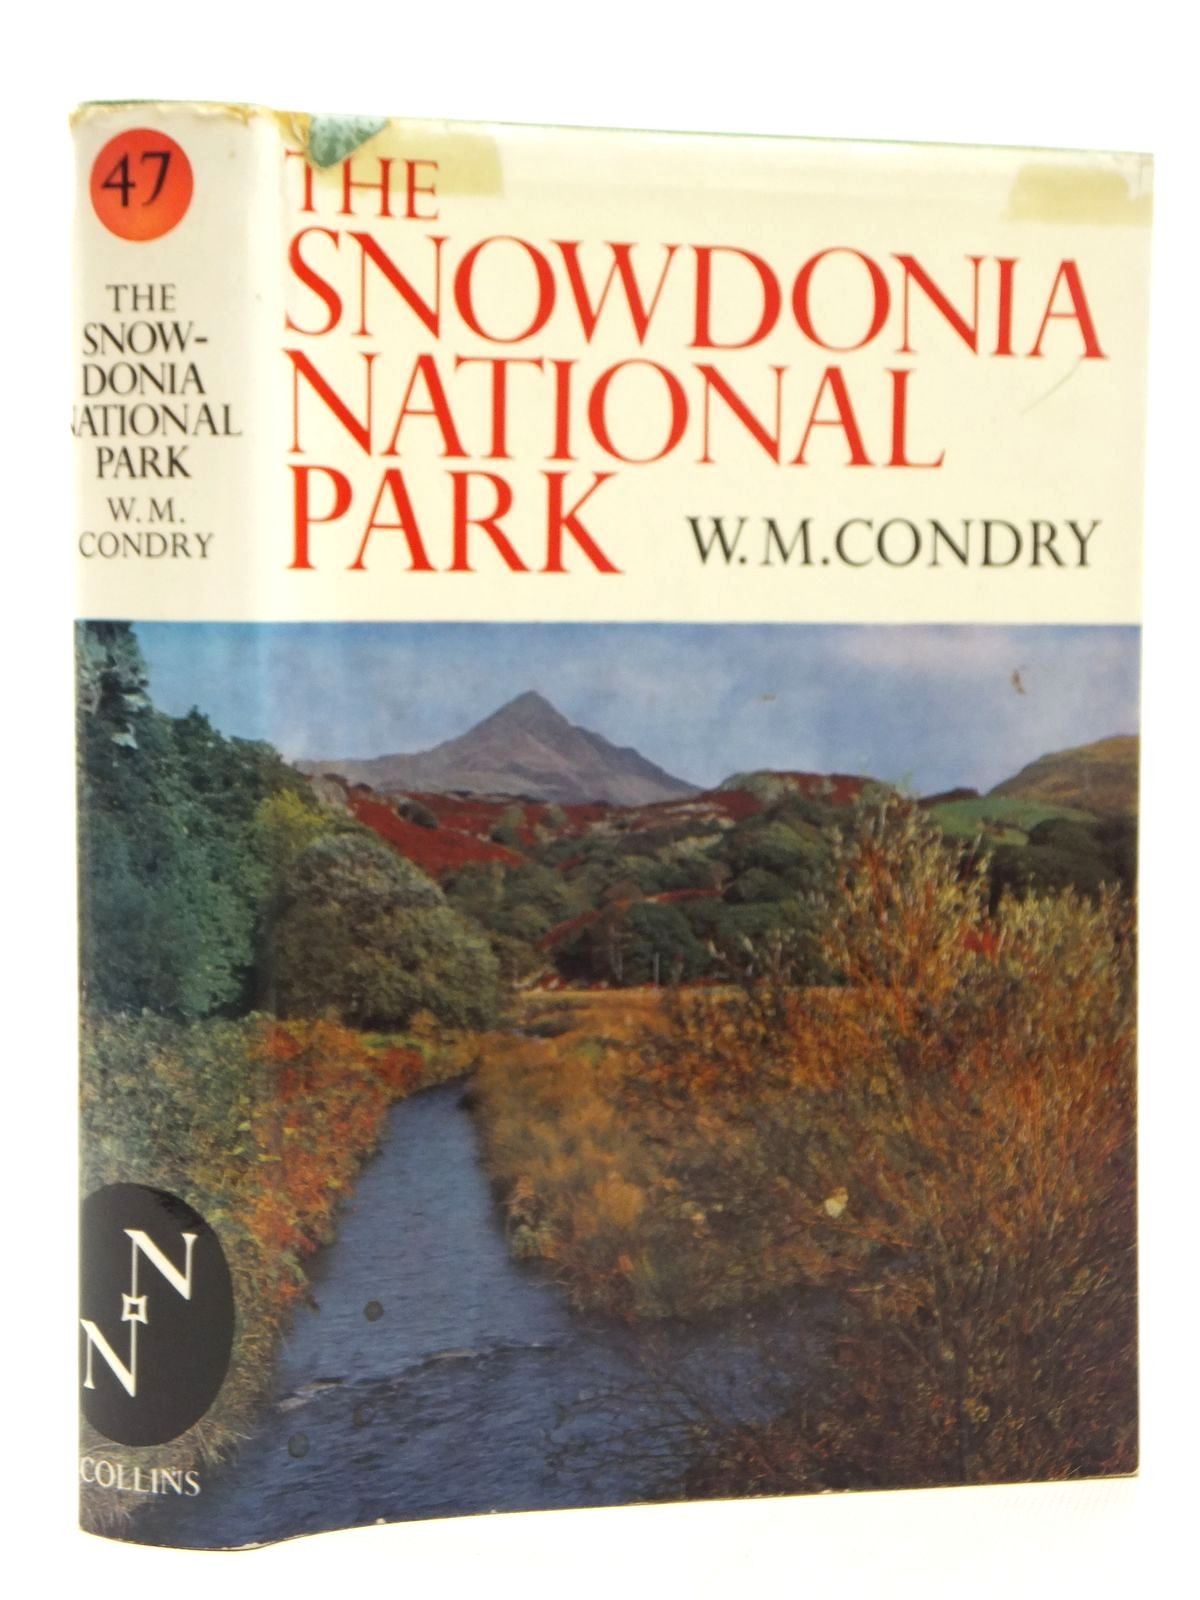 Photo of THE SNOWDONIA NATIONAL PARK (NN 47) written by Condry, William M. published by Collins (STOCK CODE: 1609580)  for sale by Stella & Rose's Books